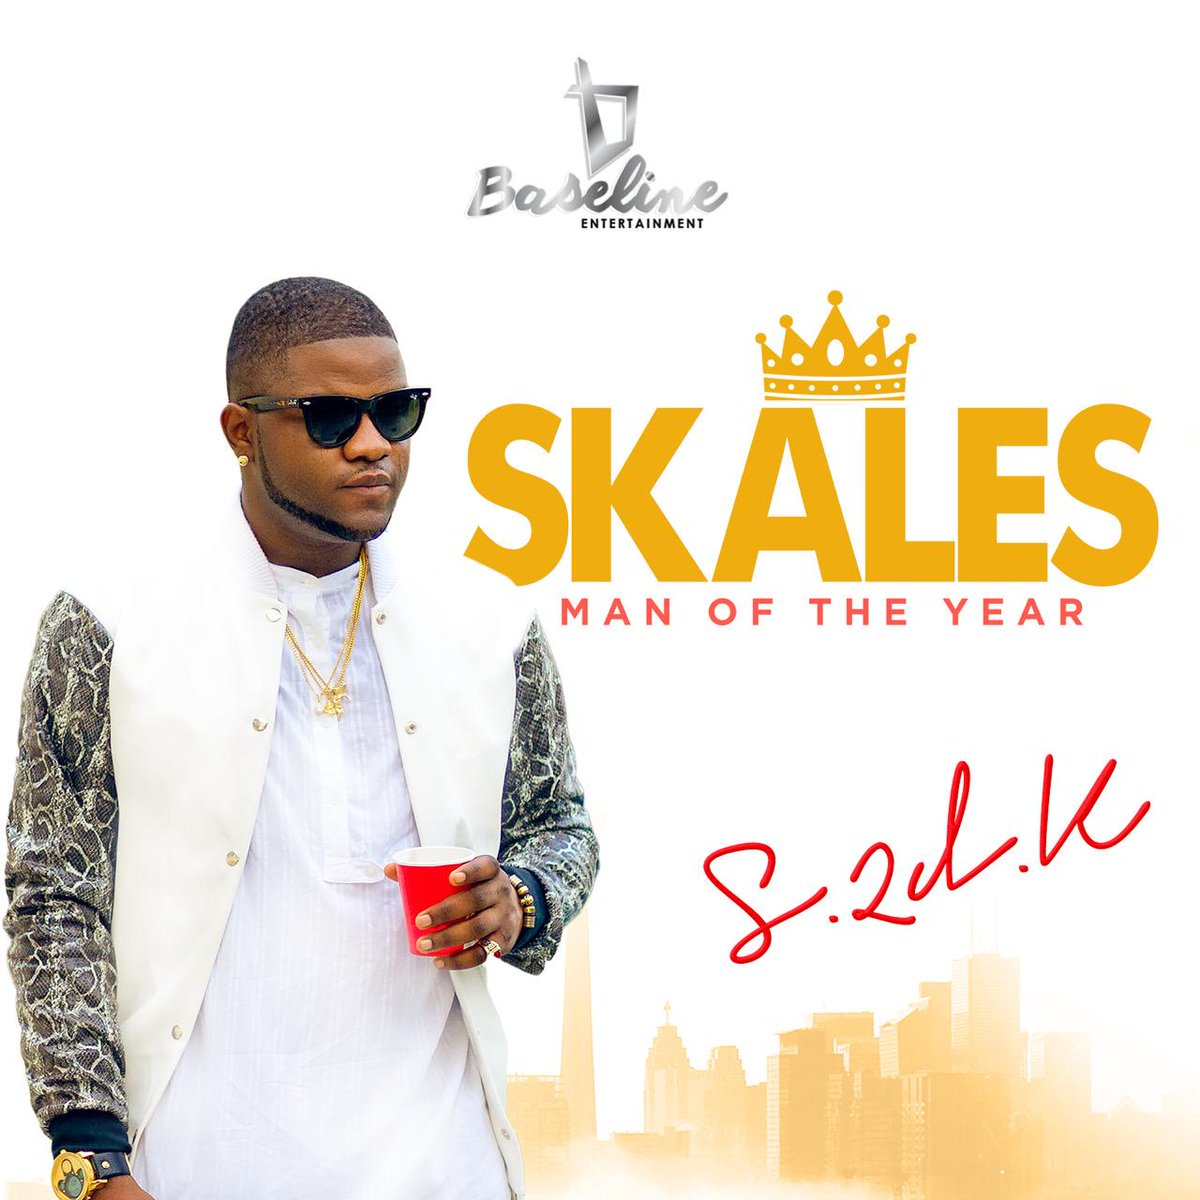 The @youngskales #ManOfTheYear album is now available on iTunes https://t.co/AG2JqFkmWN http://t.co/f3AOuWb1rG